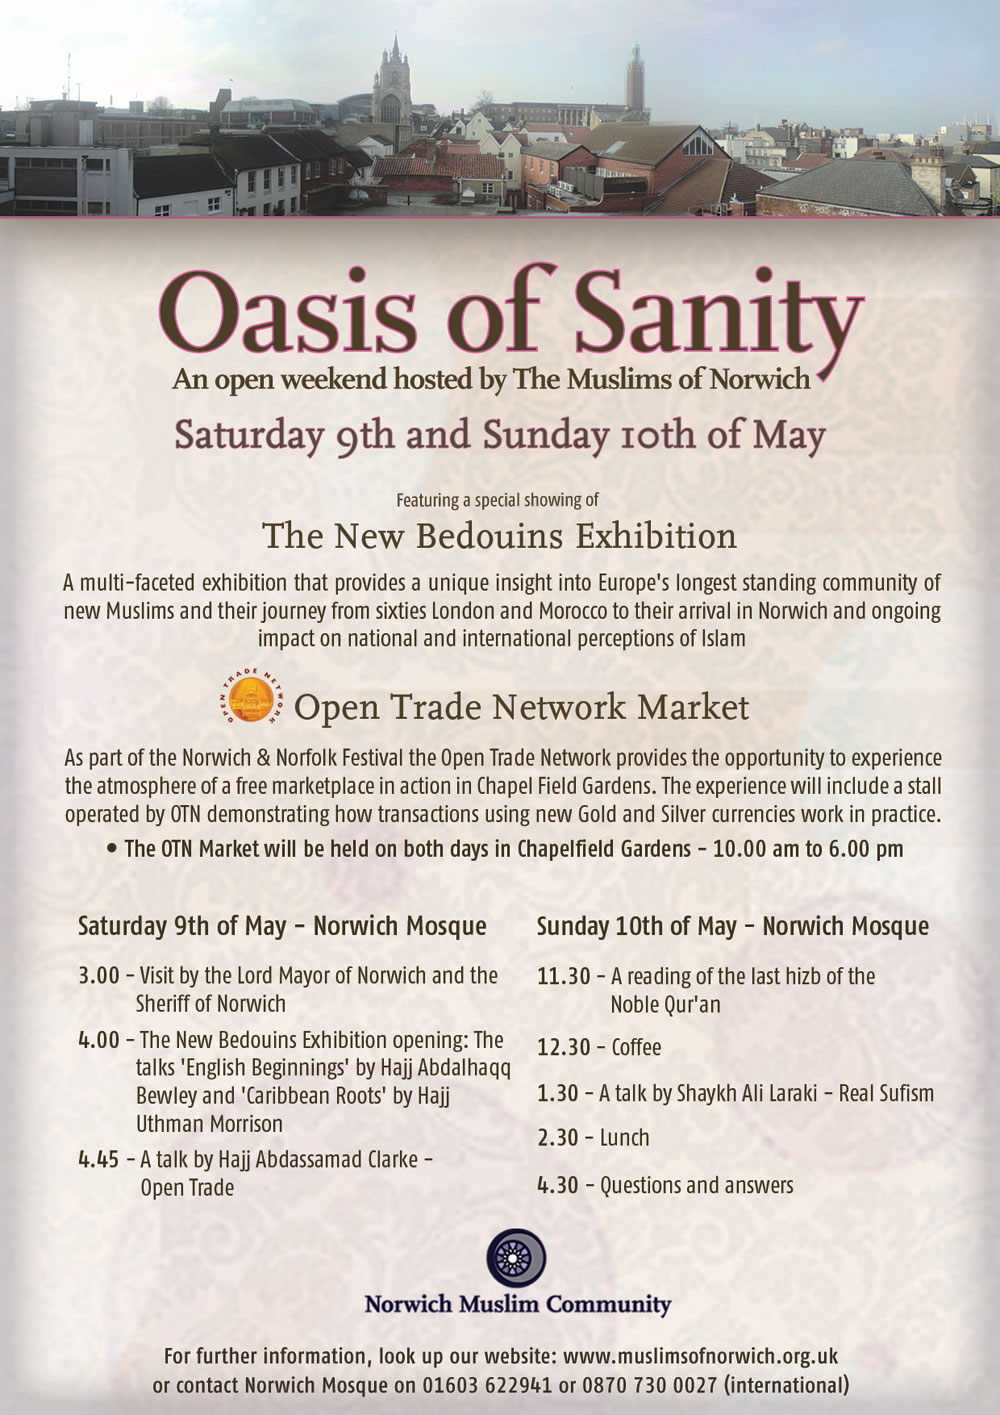 Norwich - Oasis of Sanity: An open weekend hosted by The Muslims of Norwich